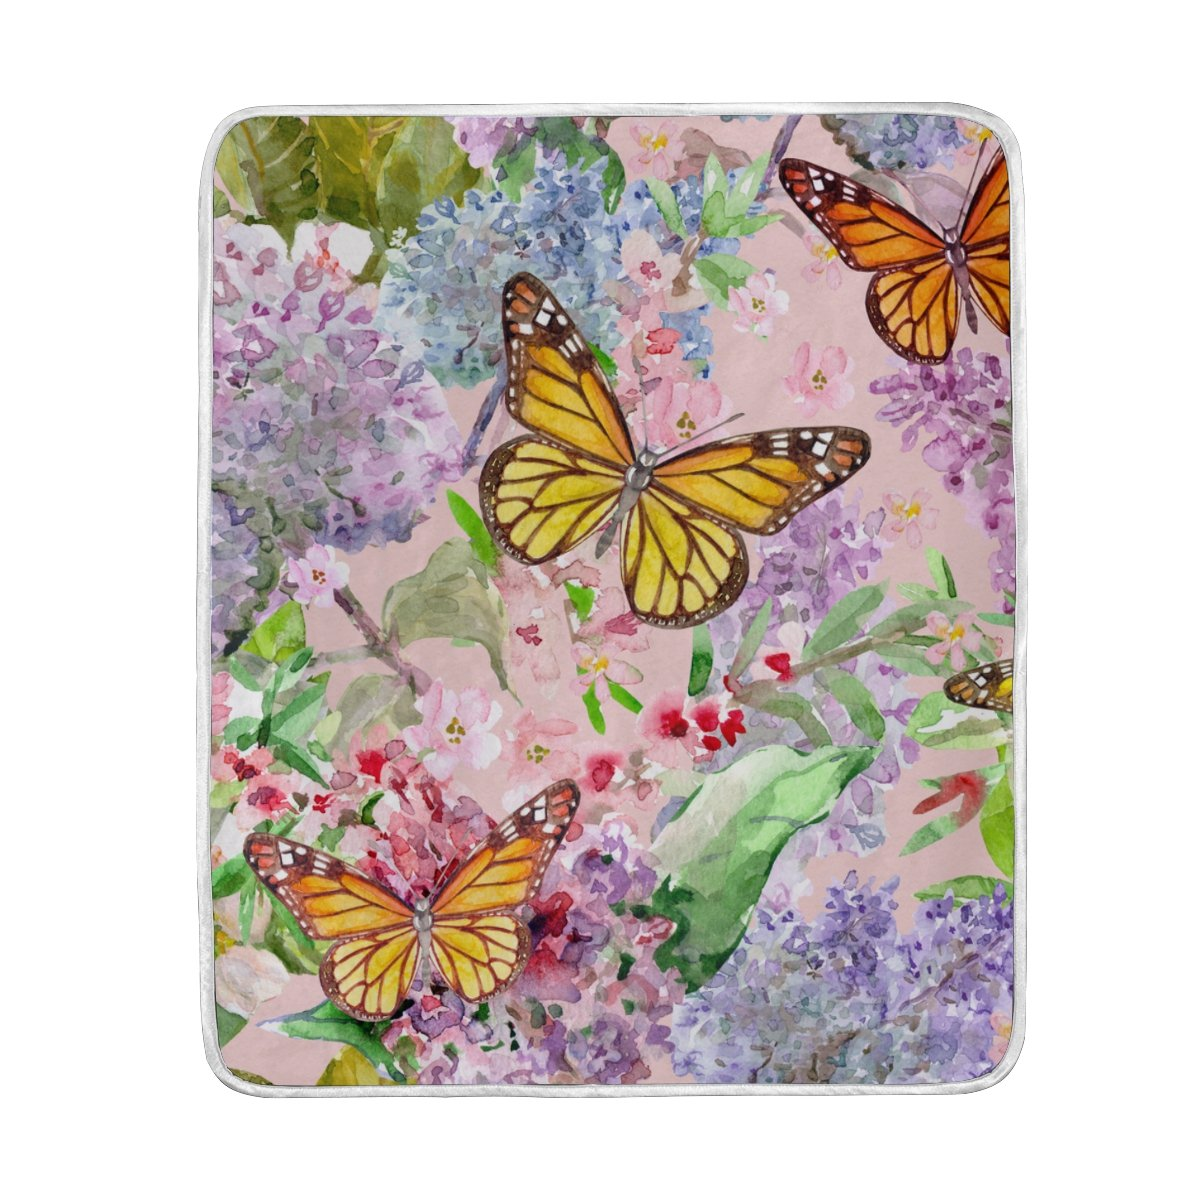 My Little Nest Warm Throw Blanket Watercolor Spring Flowers Butterflies Lightweight Microfiber Soft Blanket Everyday Use for Bed Couch Sofa 50'' x 60''